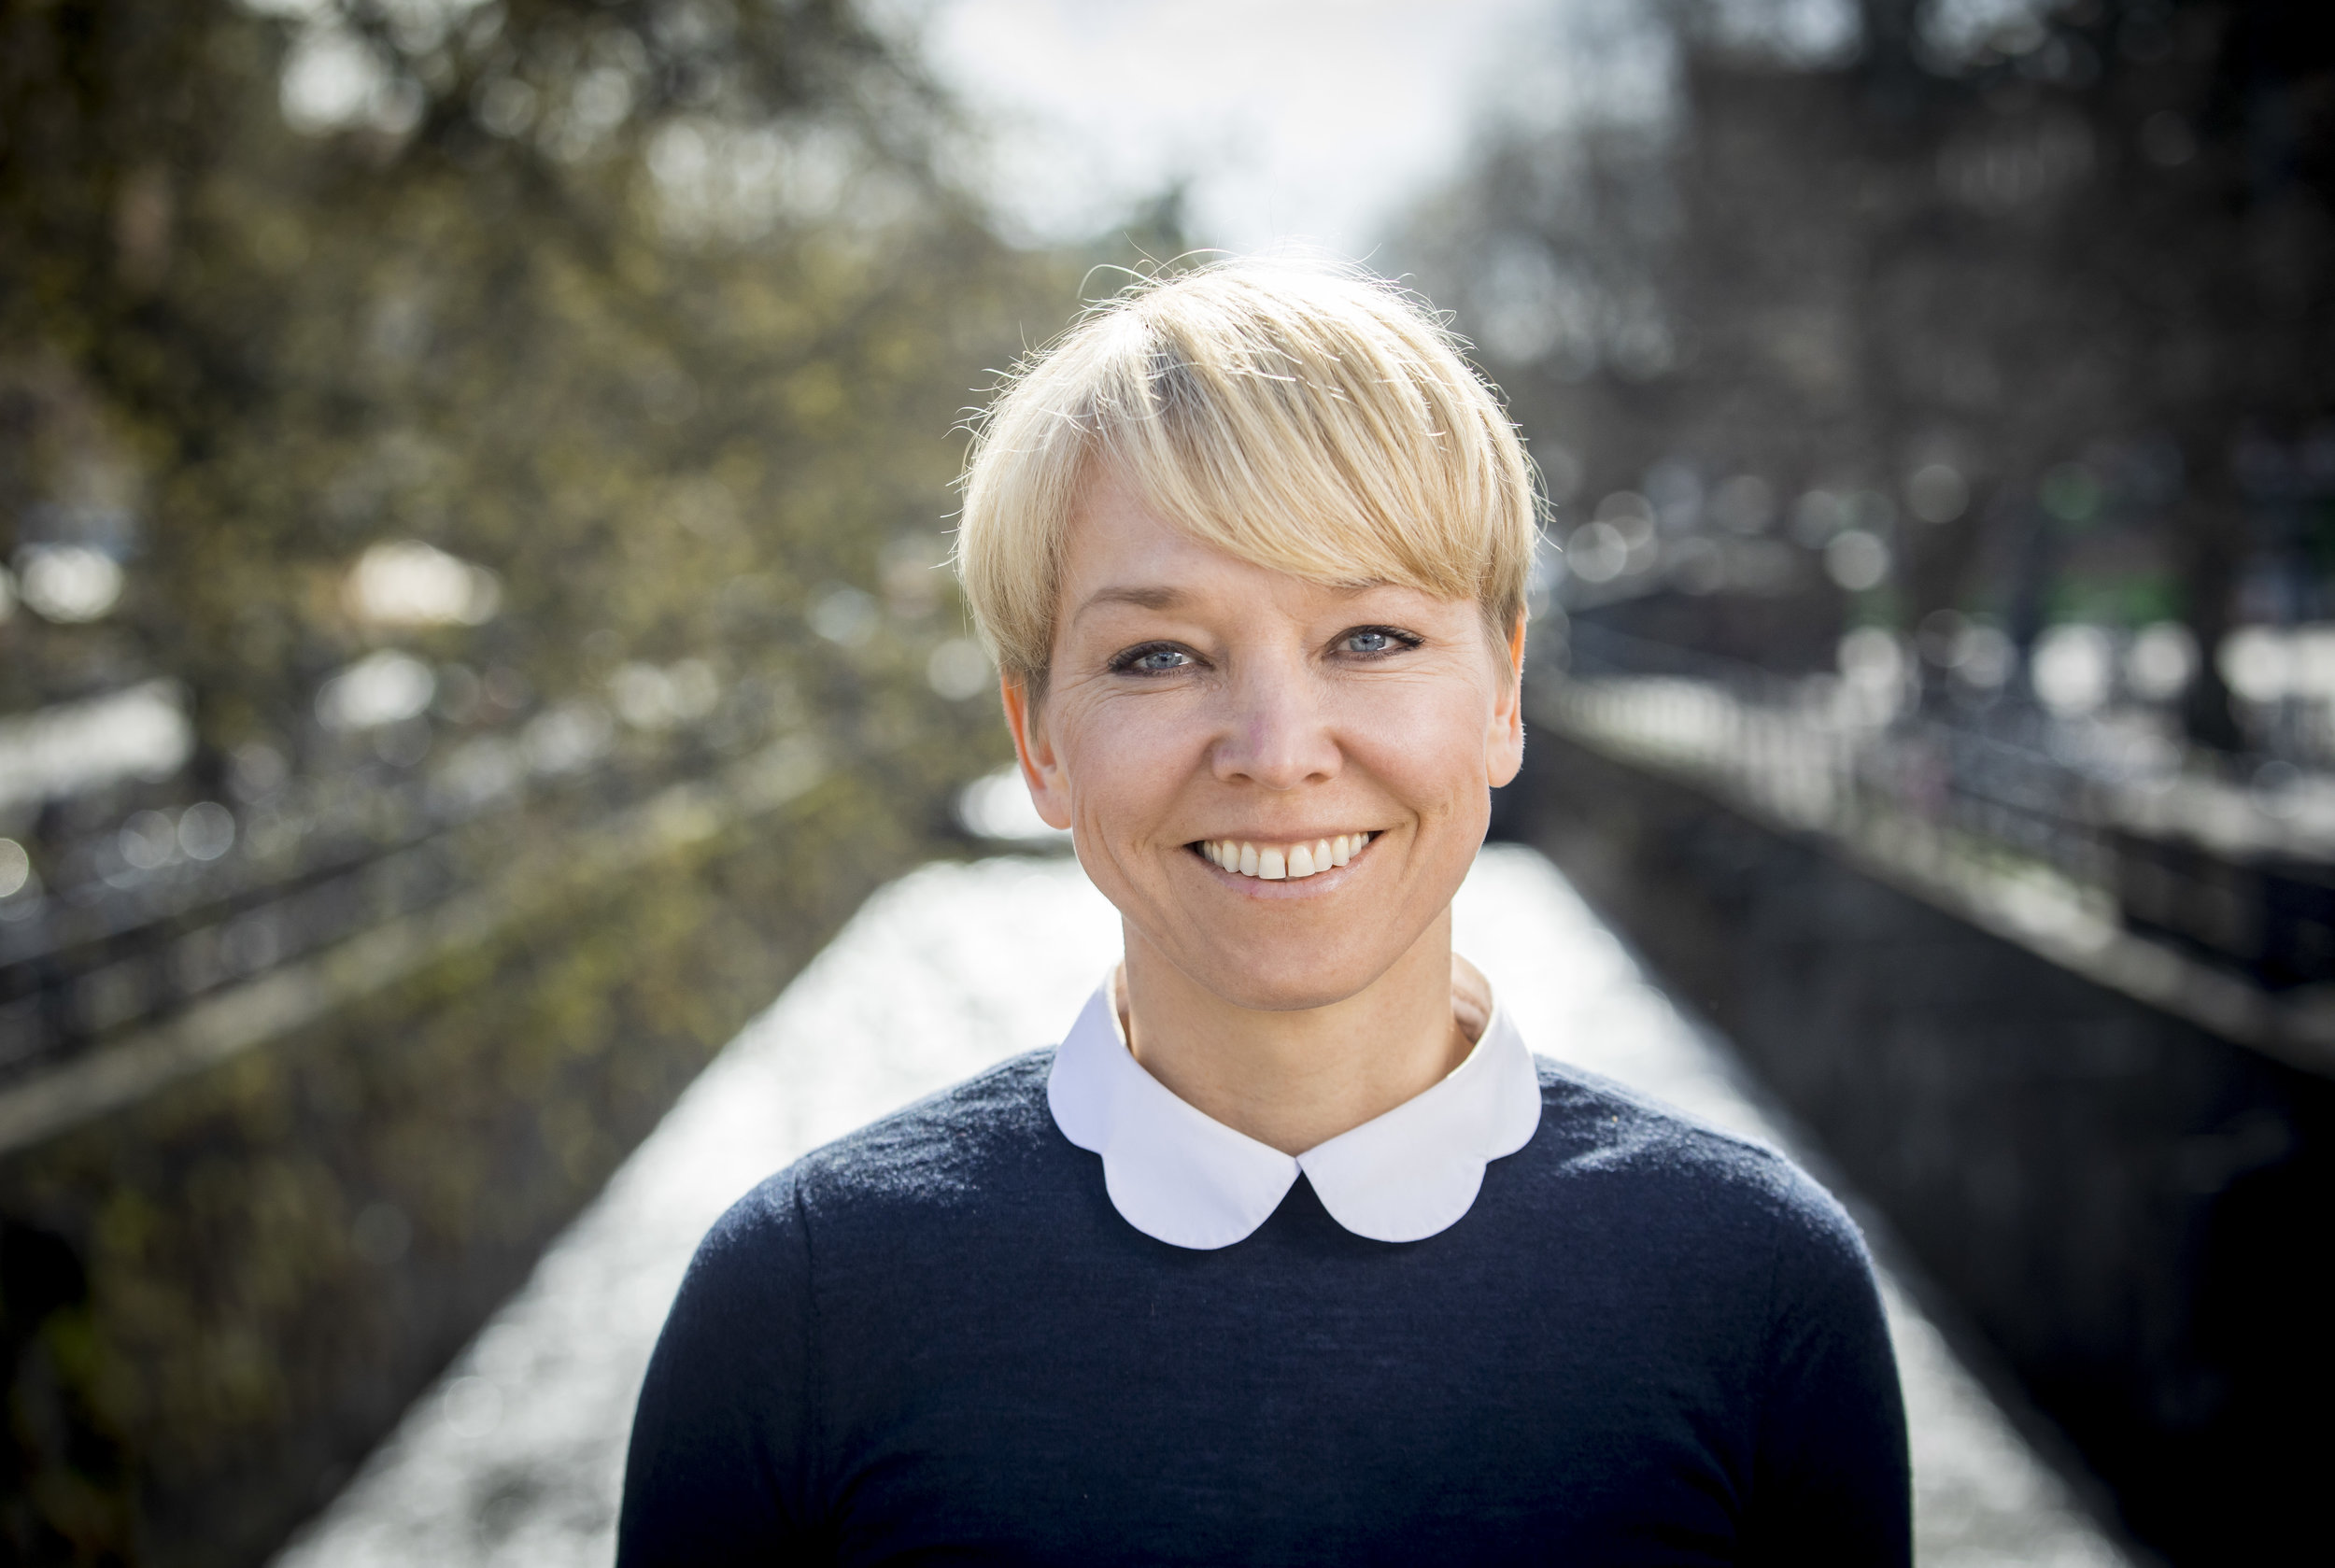 - I am an Associate Professor at the Department of Peace and Conflict Research at Uppsala University in Sweden. Since 2018 I am a Research fellow at The Royal Swedish Academy of Letters, History and Antiquities. In 2019 I started my Wallenberg Academy Fellowship. I am also a research associate with the Peace Research Institute Oslo.My research deals with questions in the intersection between democratic institutions and armed conflict. I am particularly interested in understanding what places certain elections at risk of violence and the impact of electoral violence on citizens, as well as democratic institutions at large.